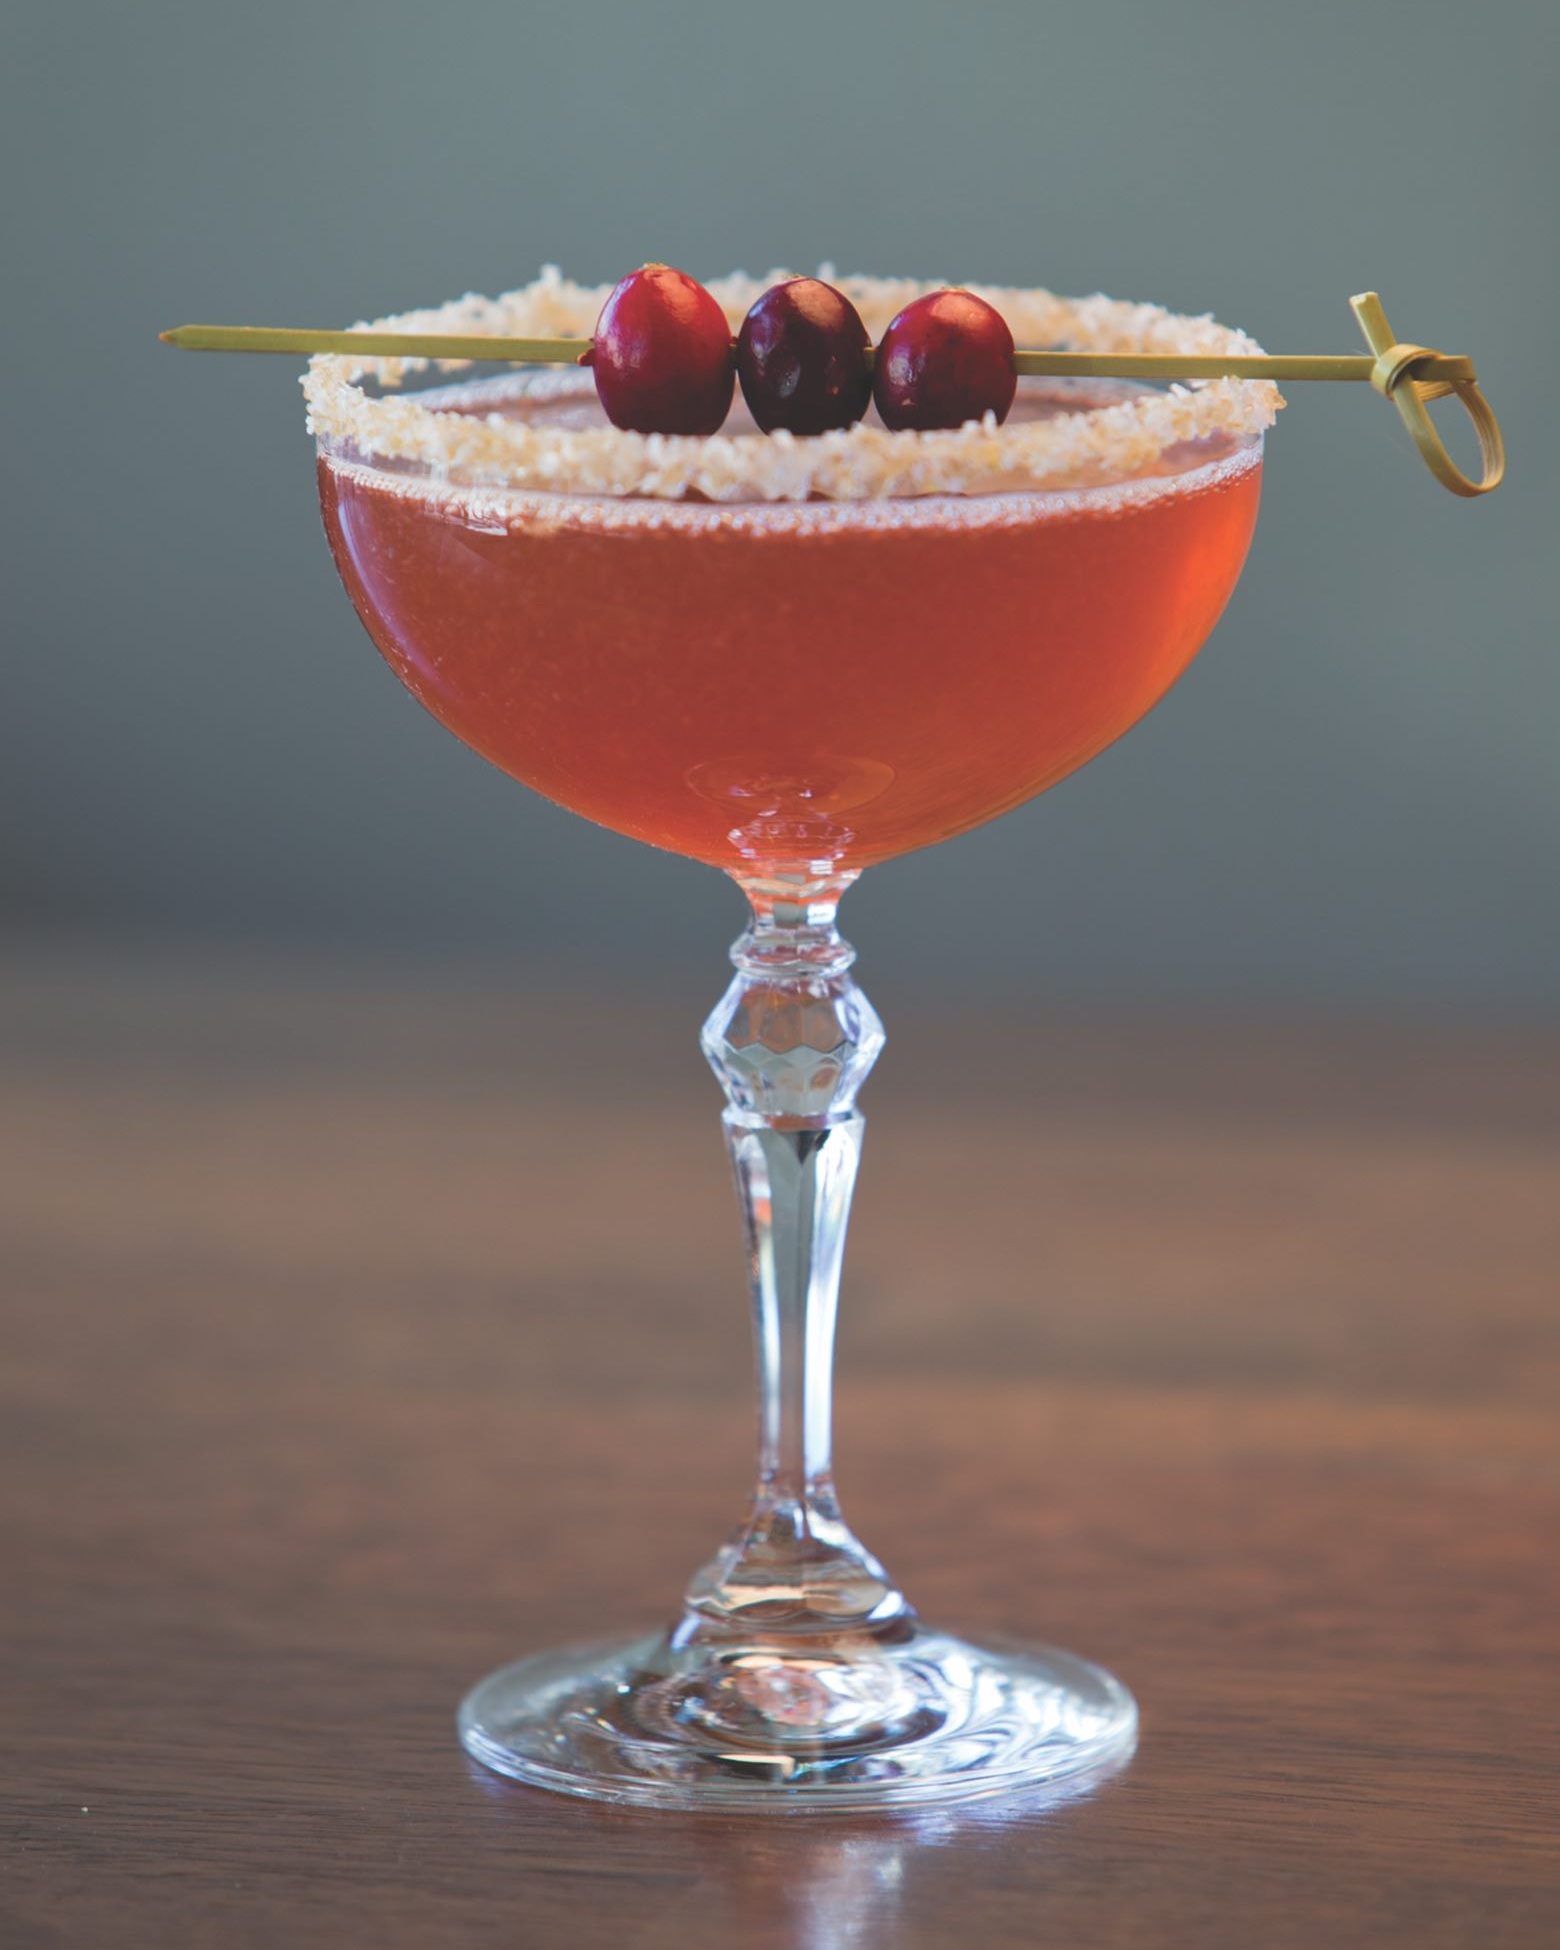 Montanya's Scarlett O'Hara in a coupe glass.